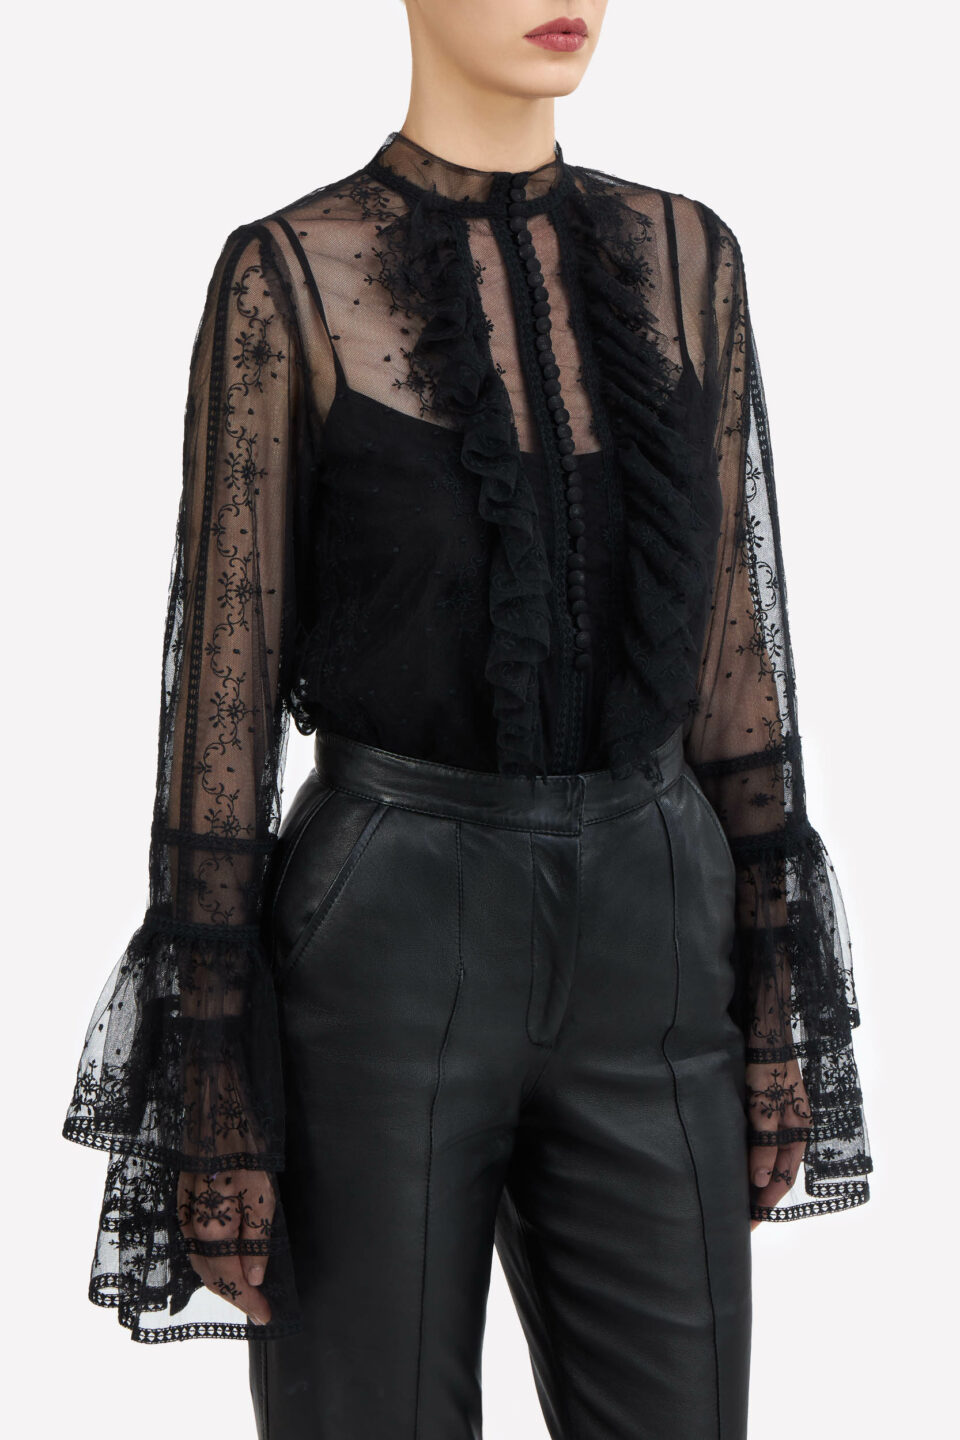 Scarlett FW2163 Black Embroidered French Tulle Buttoned Blouse with Layered Fluted Sleeves / Denie FW2190 Black Soft Lamb-Skin Leather Wide-Leg Pants with Pintuck Seams